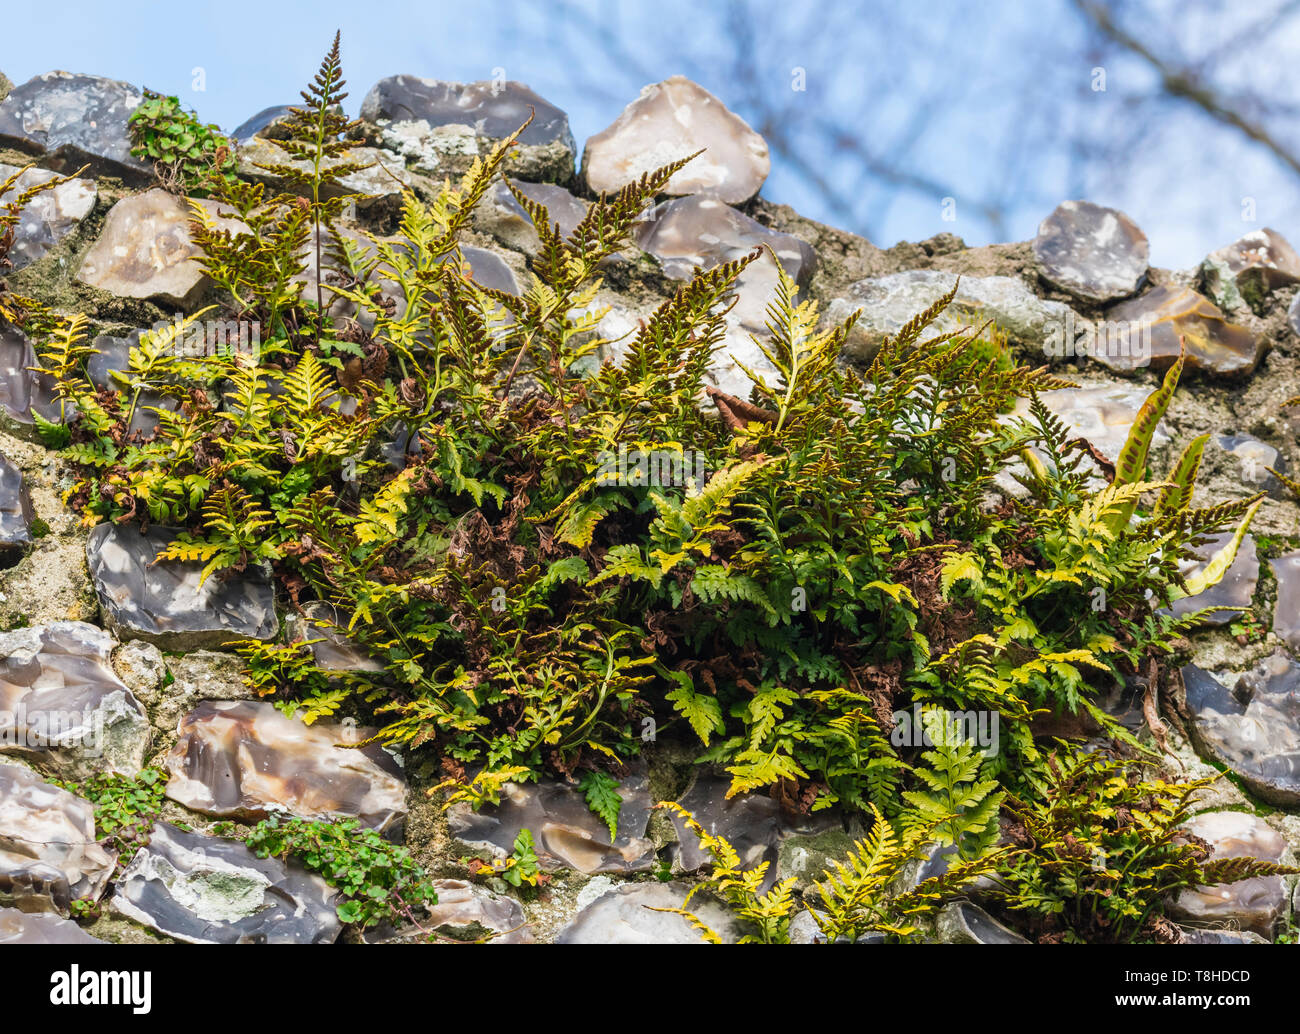 Polypody ferns (Polypodium fern, Polypodies, Rockcap ferns) growing out of an old stone wall in Winter (February) in West Sussex, England, UK. - Stock Image